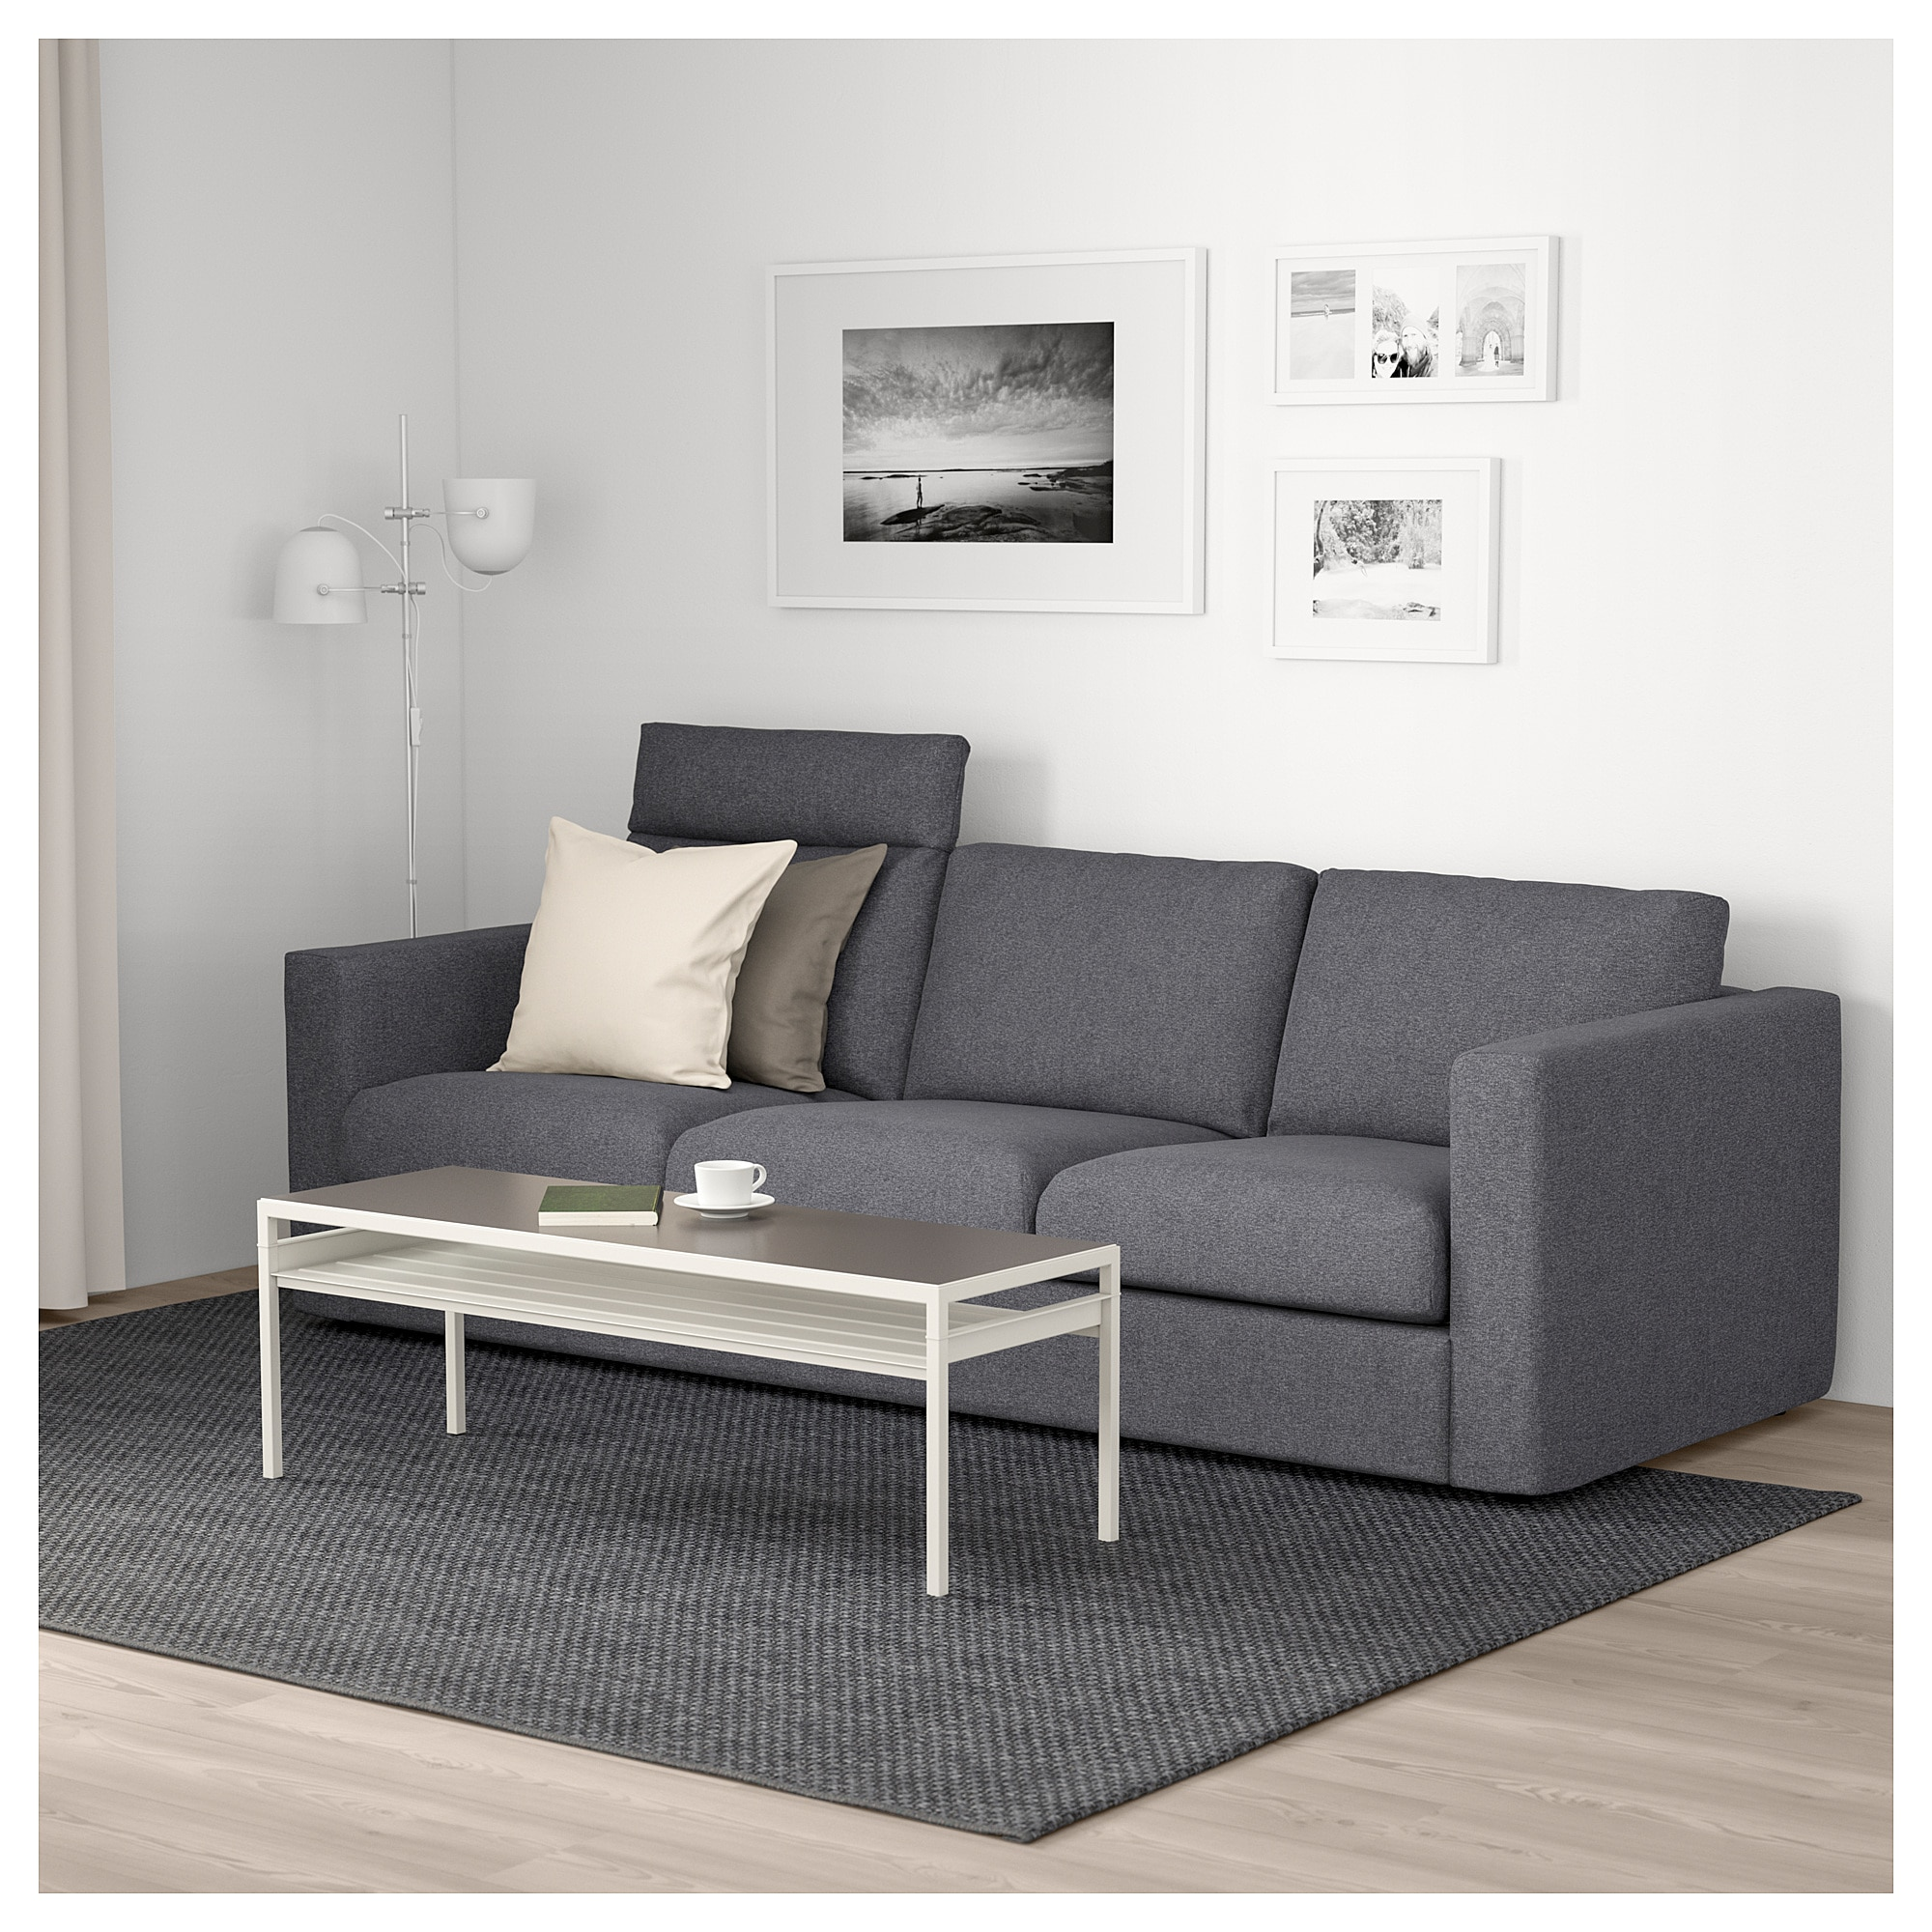 Ikea Vimle Sofa With Headrest Gunnared Medium Gray In 2019